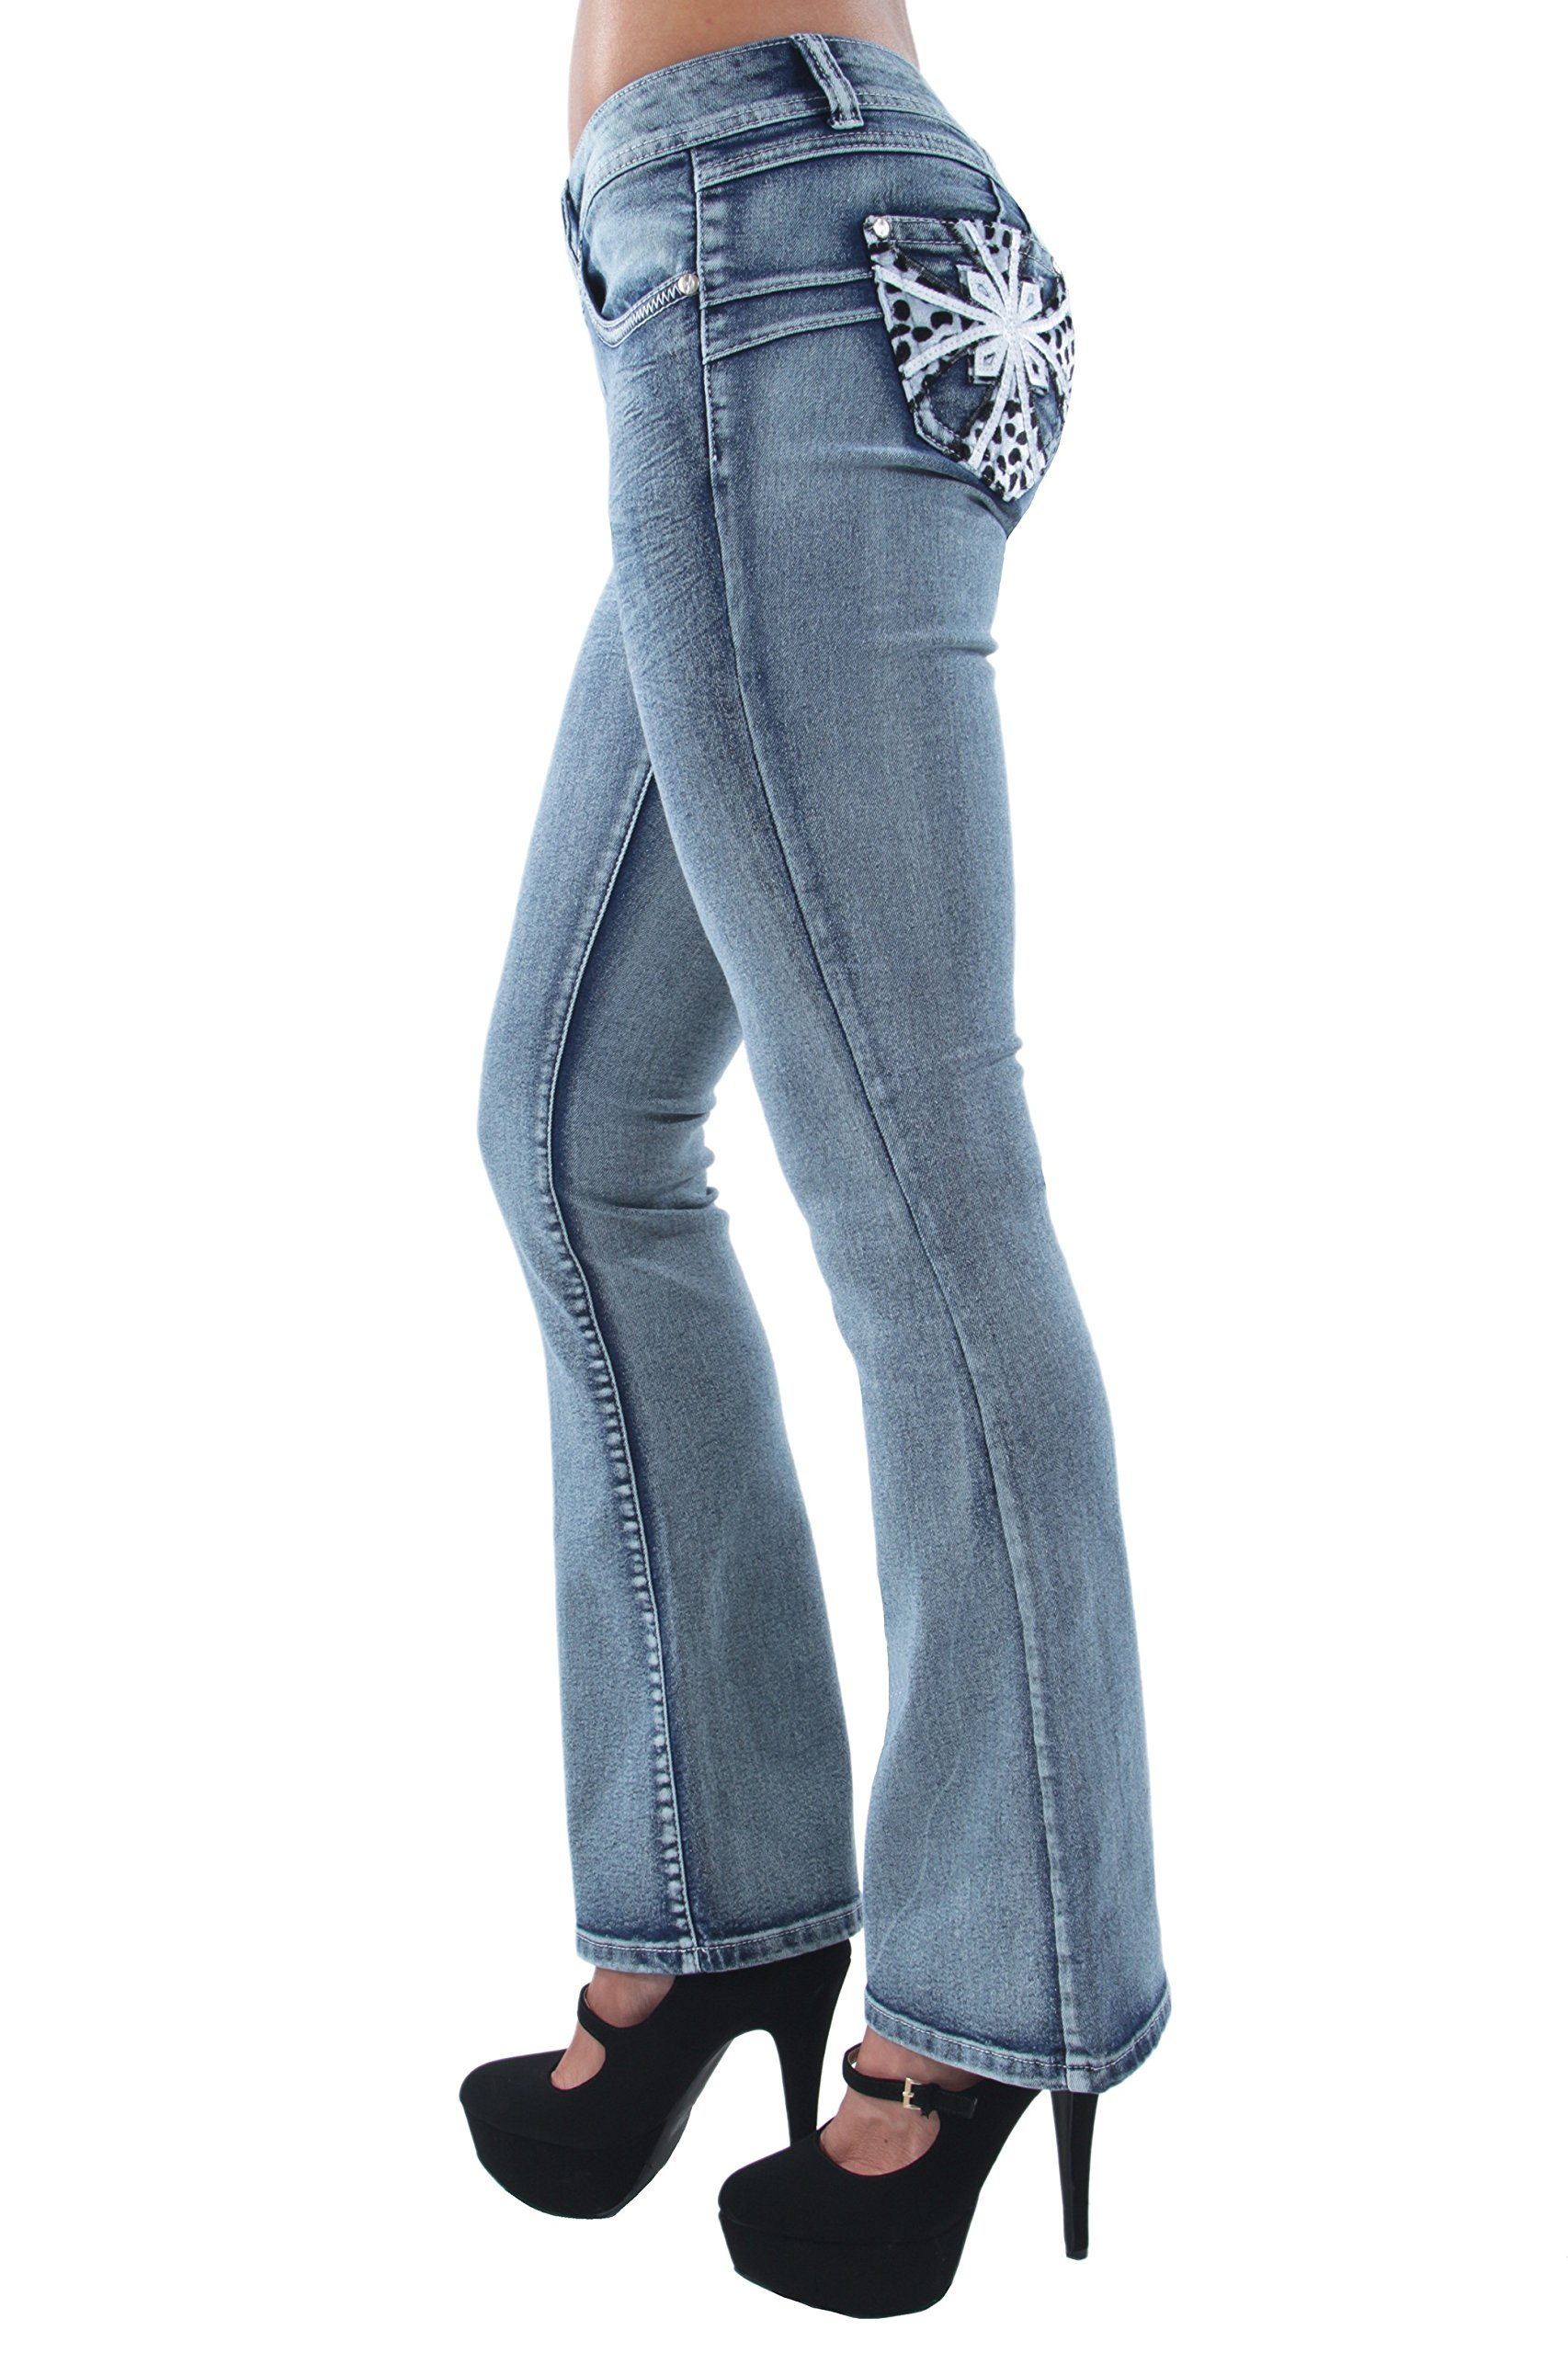 Fashion2Love F2L-35057(F)-BT – Colombian Design, Butt Lift, Levanta Cola, Boot Leg Jeans in Washed Blue Size 13